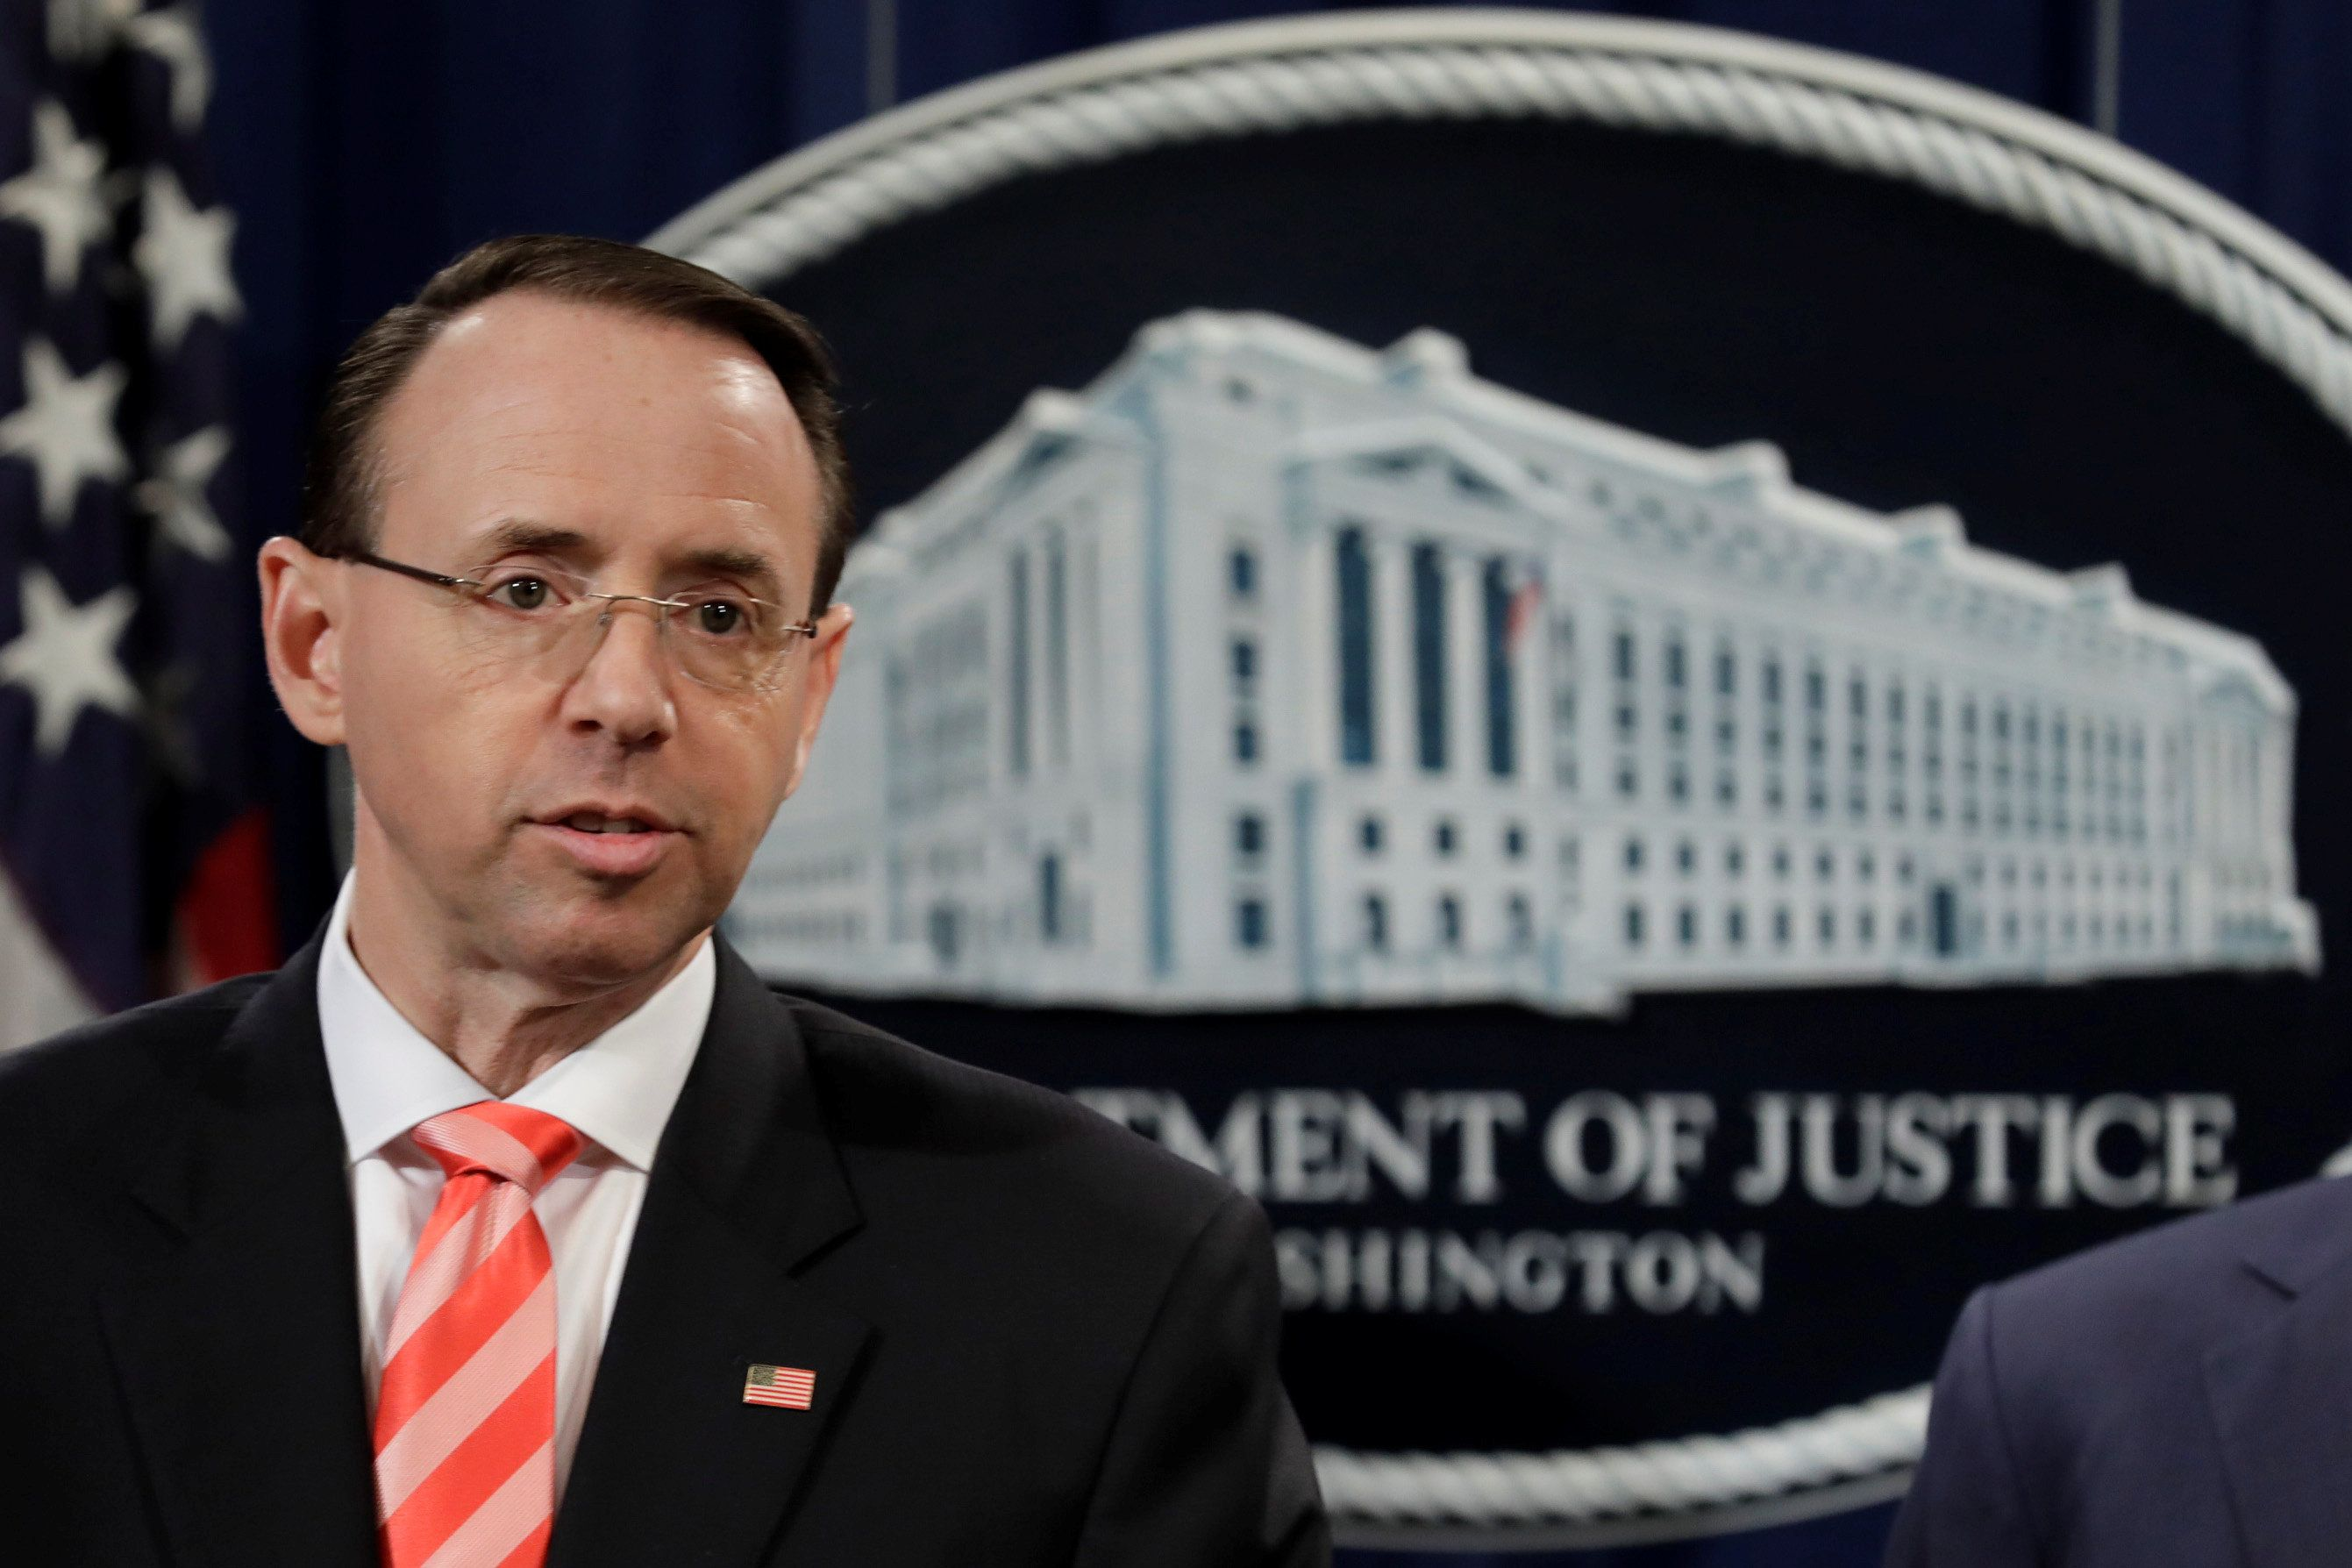 Deputy AG Rod Rosenstein to make 'law enforcement announcement'